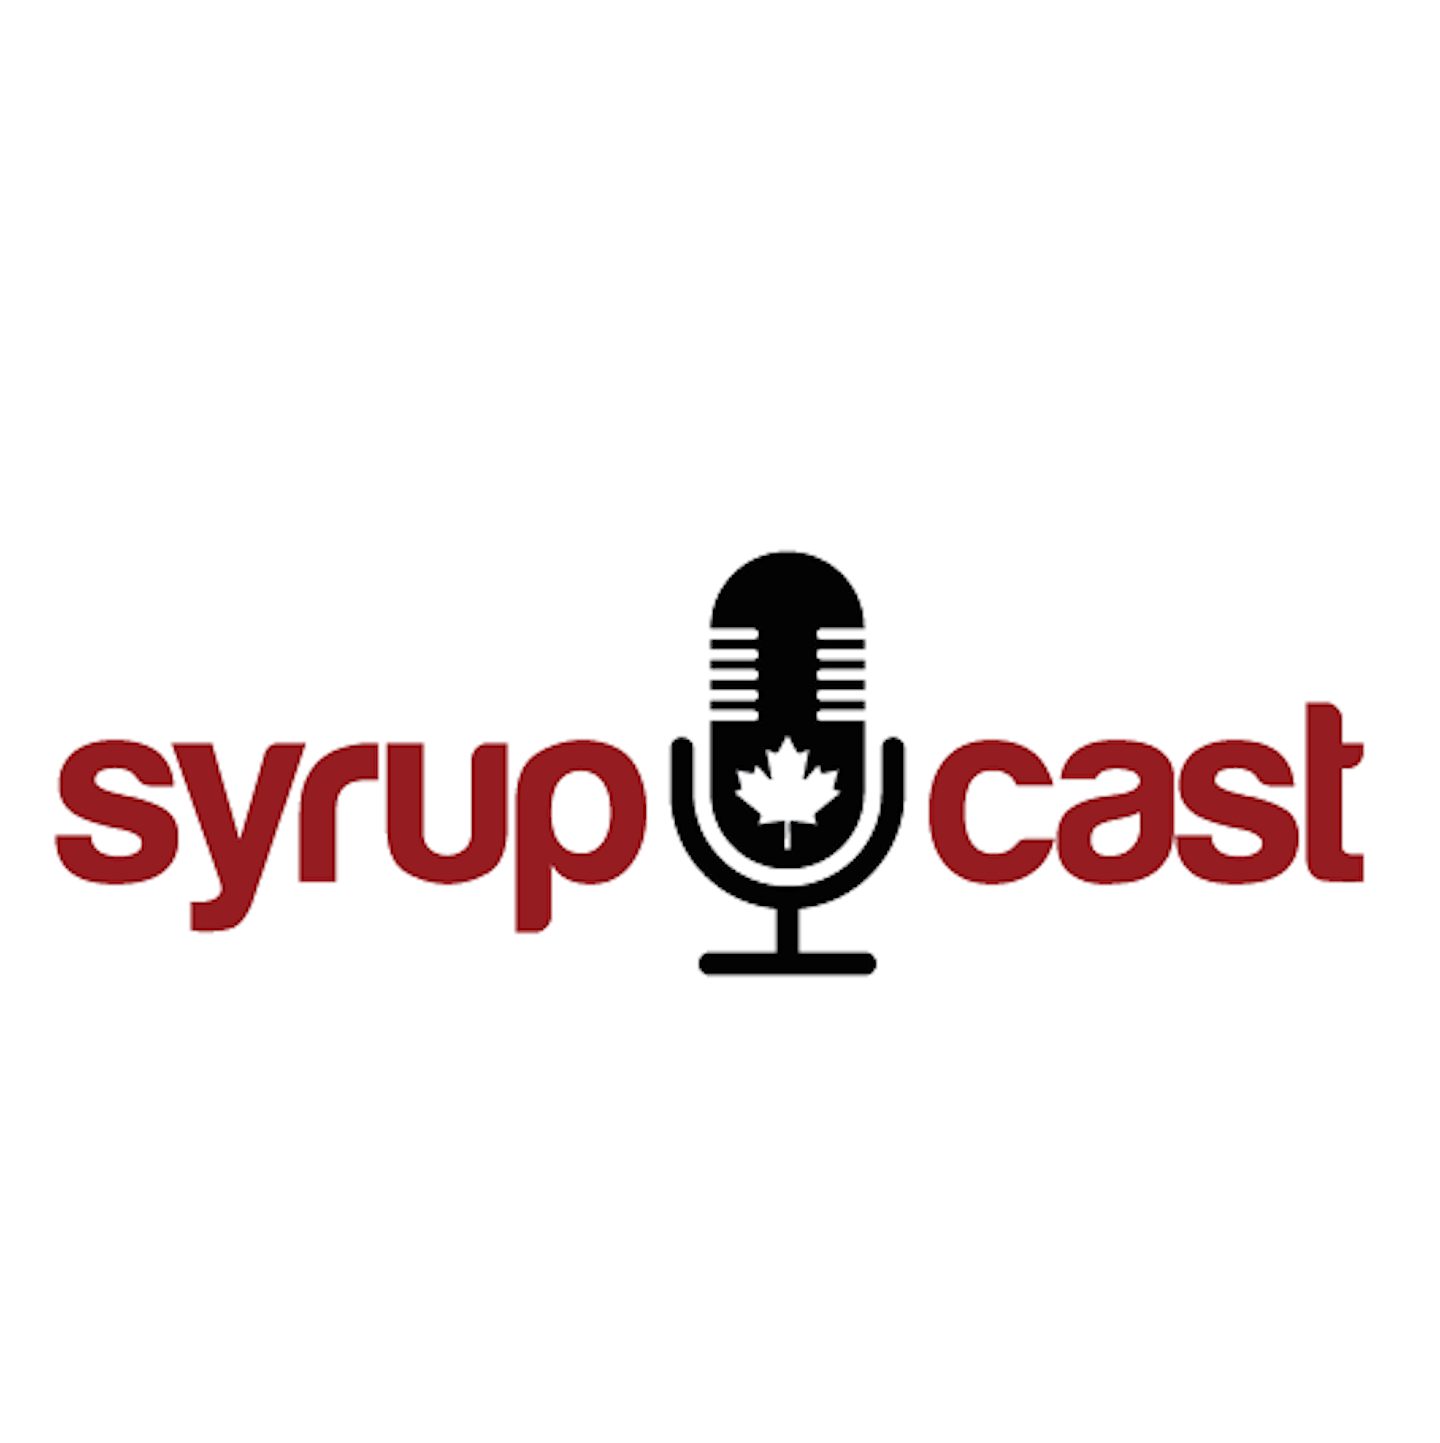 SyrupCast 76: BlackBerry's Chill and sub $500 smartphones